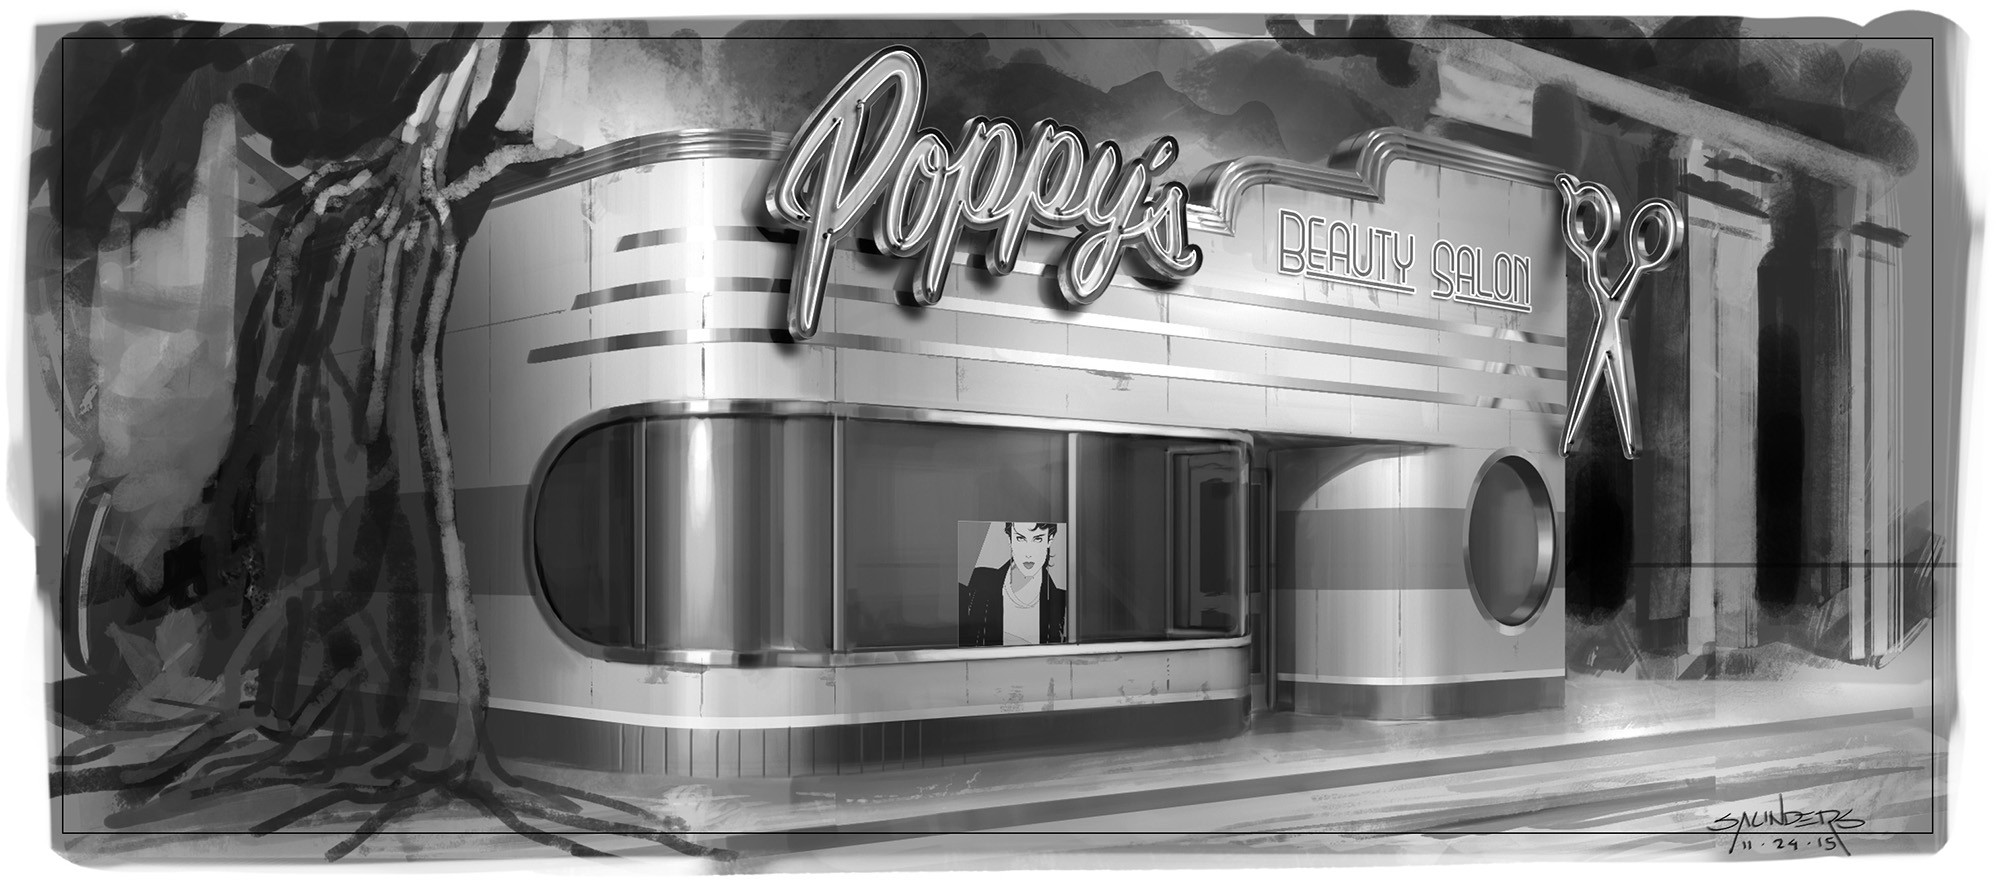 A pass at Poppy's Salon exterior featuring 50's streamline design.